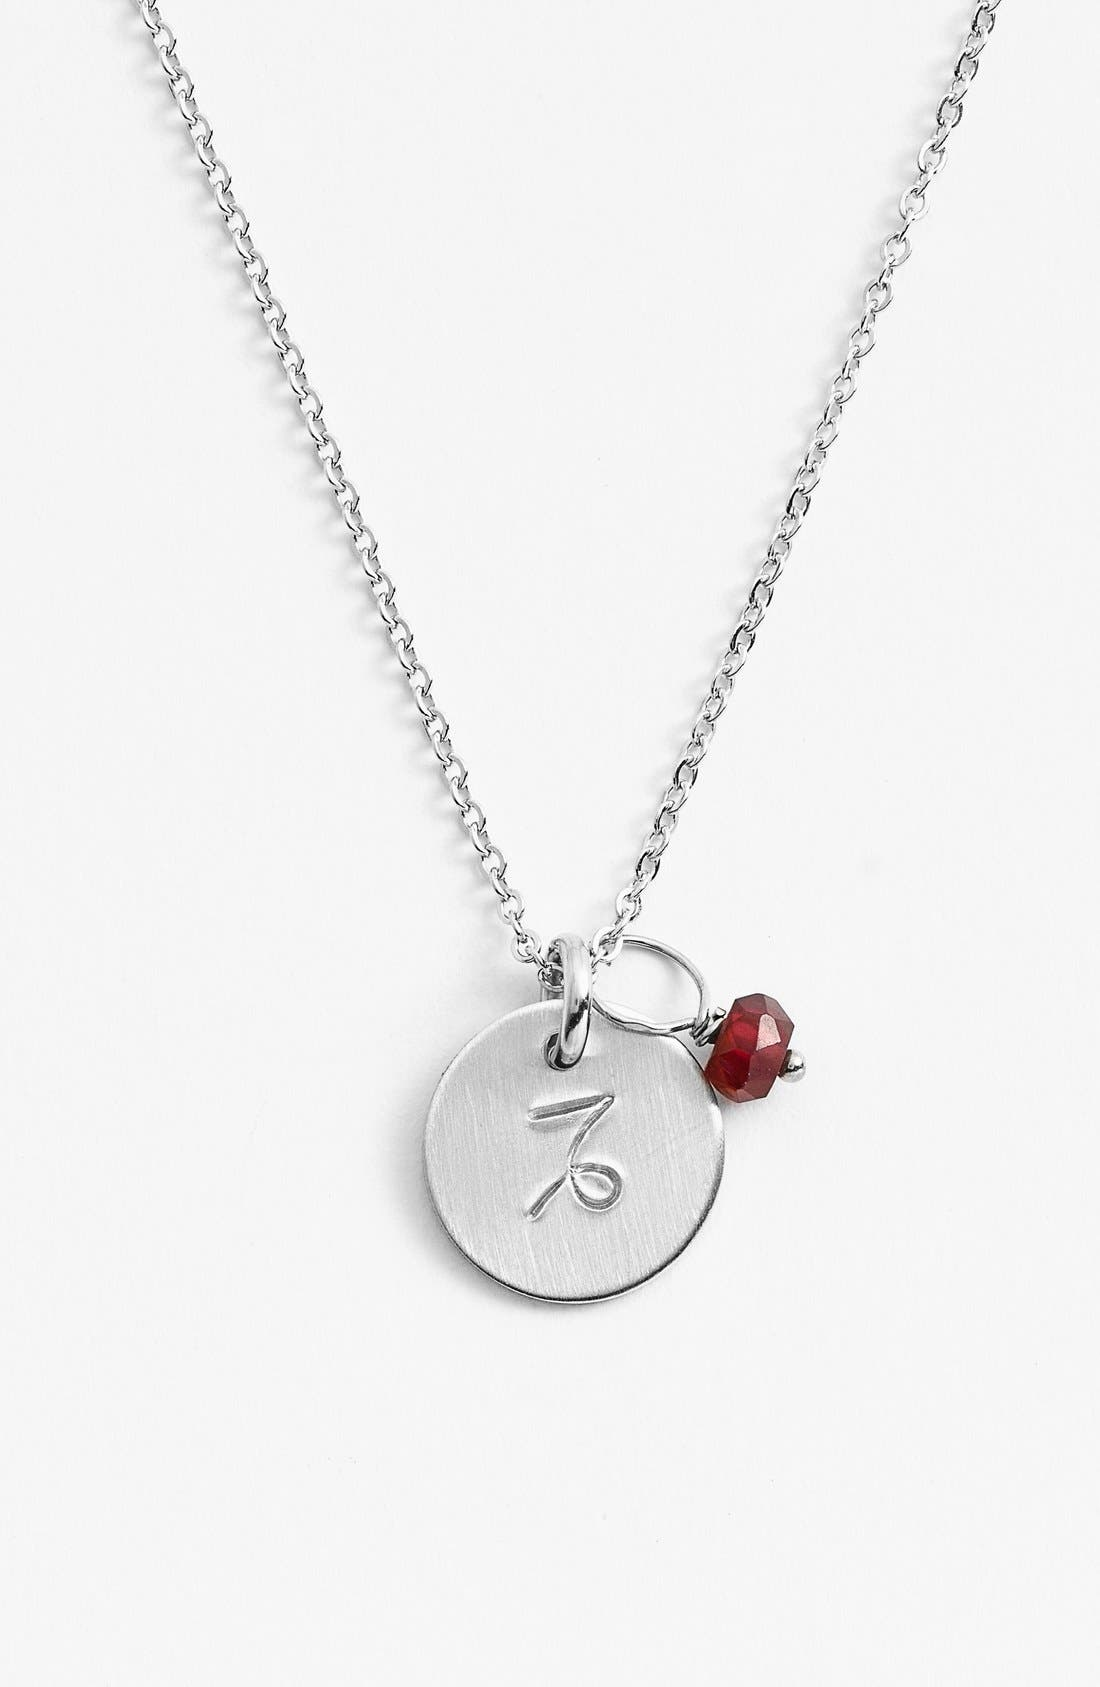 Semiprecious Birthstone Sterling Silver Zodiac Mini Disc Necklace,                             Main thumbnail 1, color,                             CAPRICORN